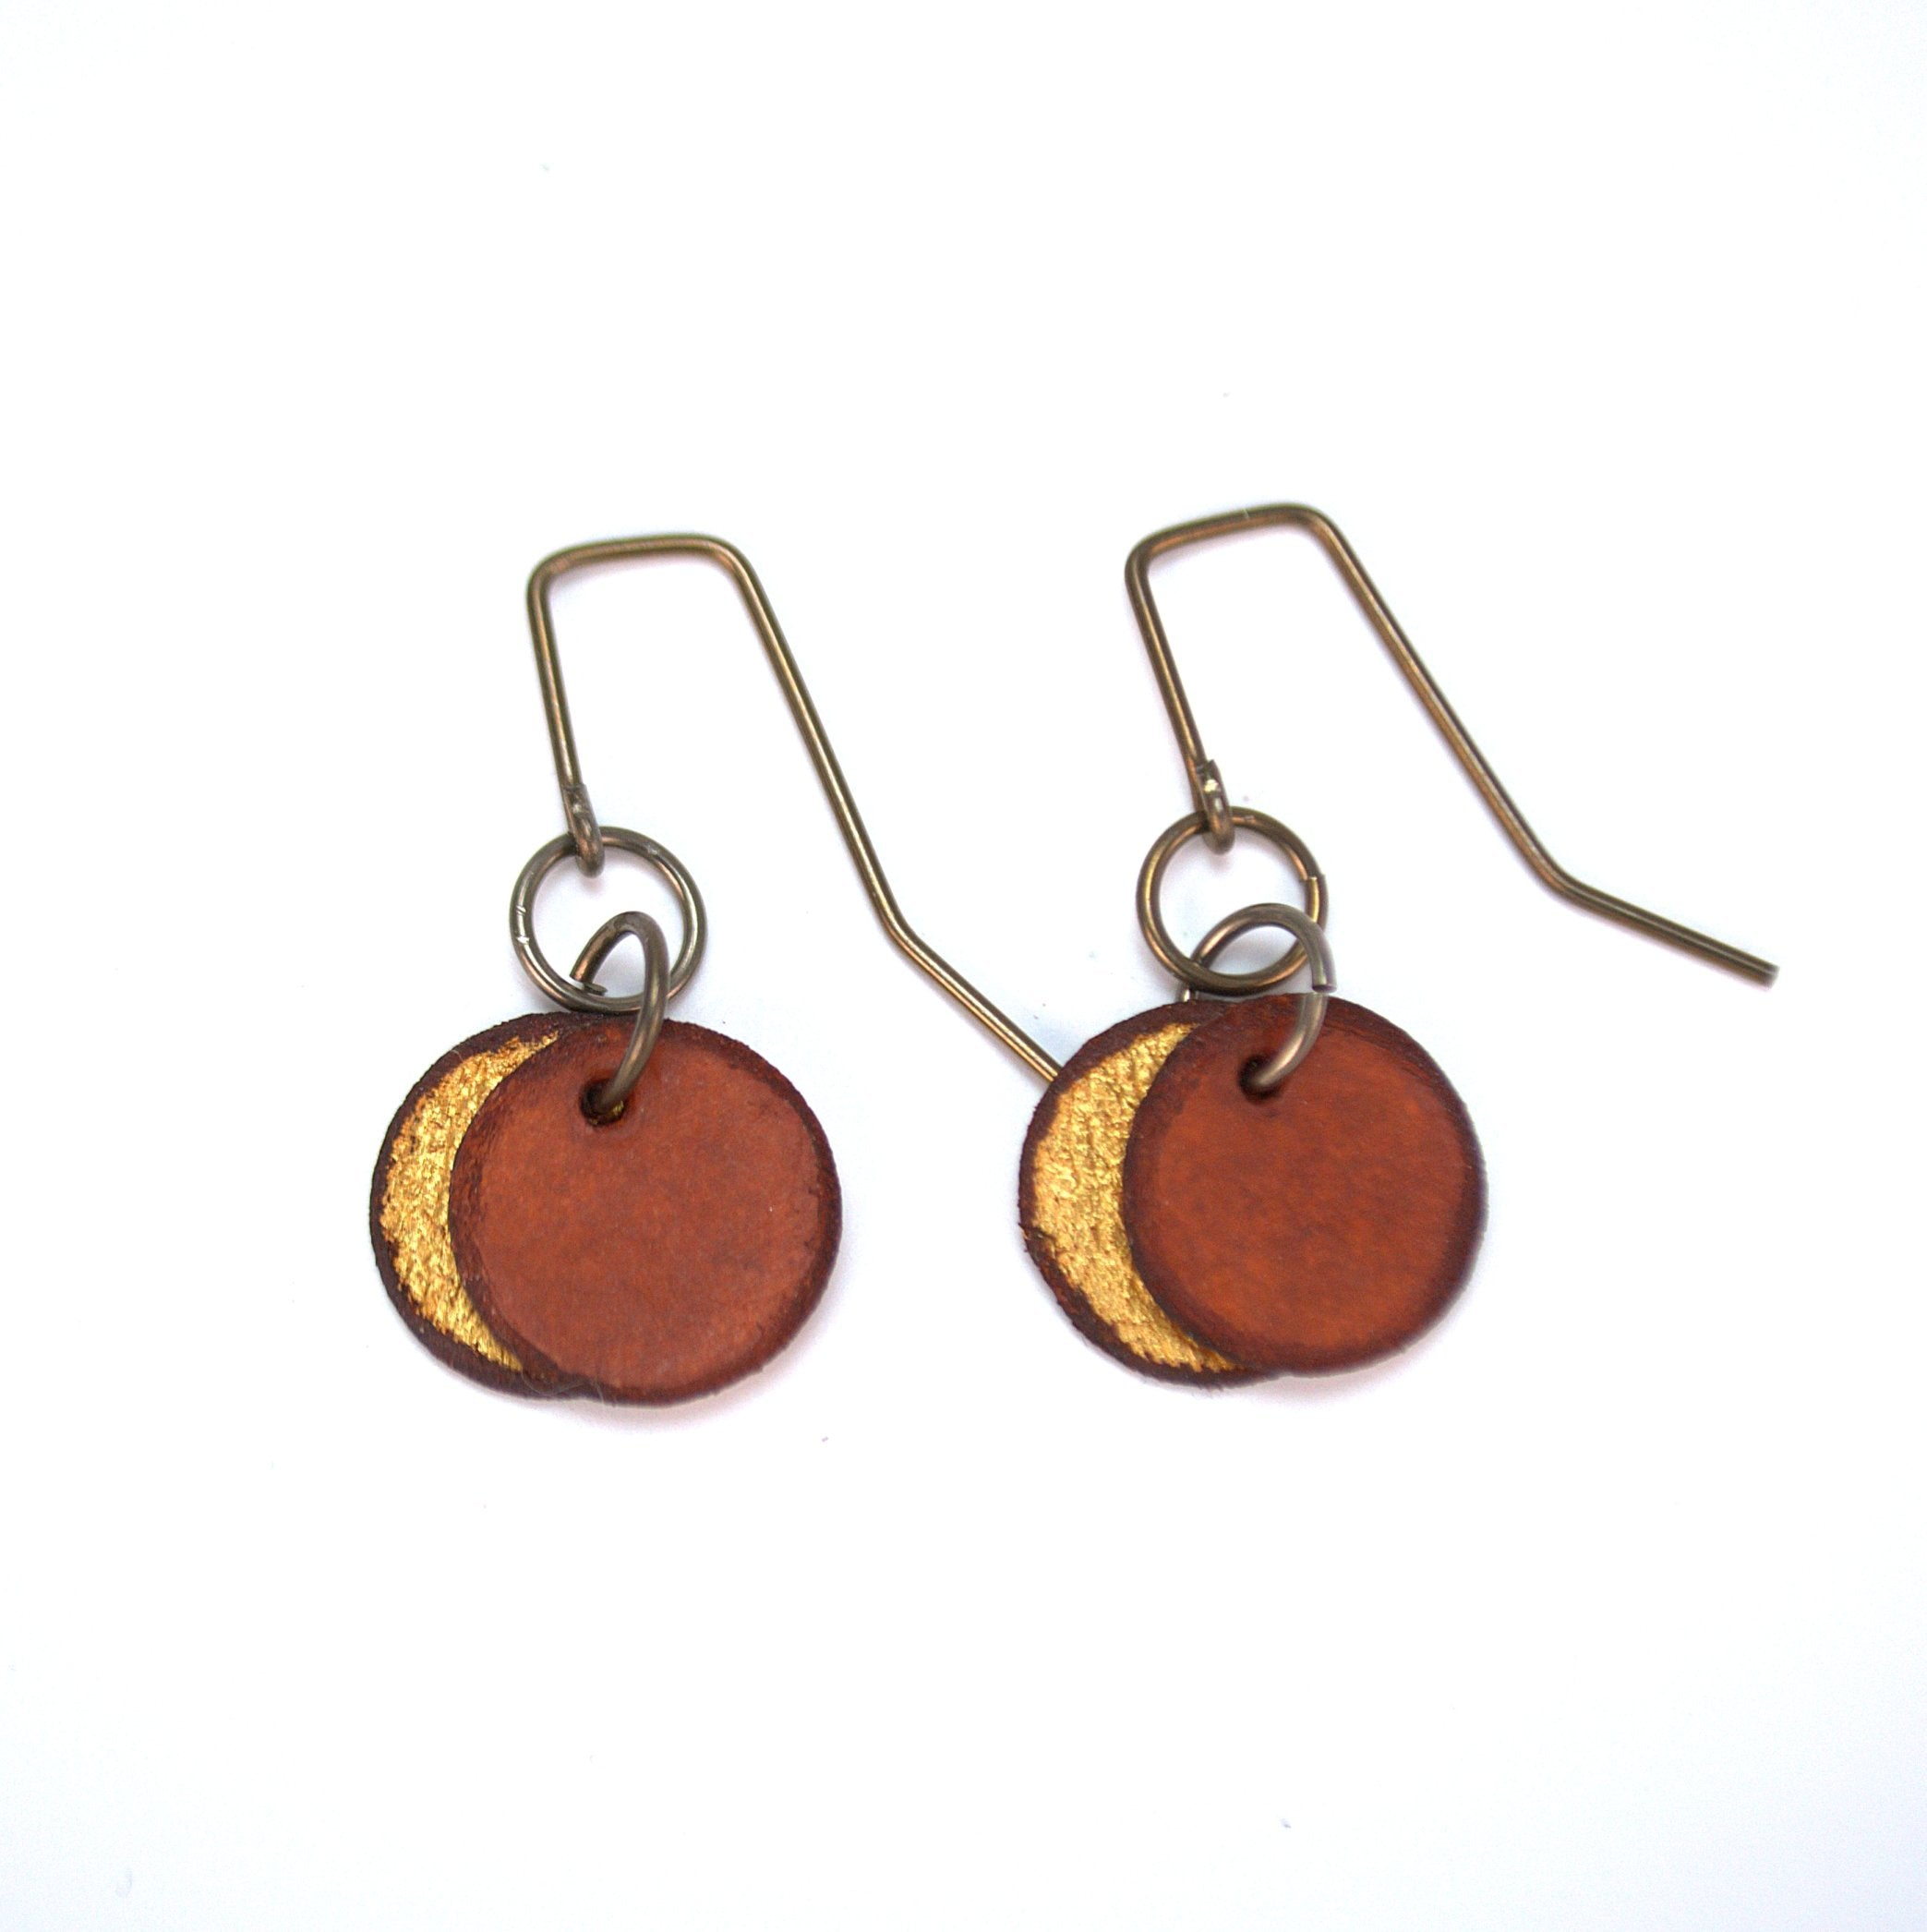 Brown circle earrings made from rawhide, super lightweight